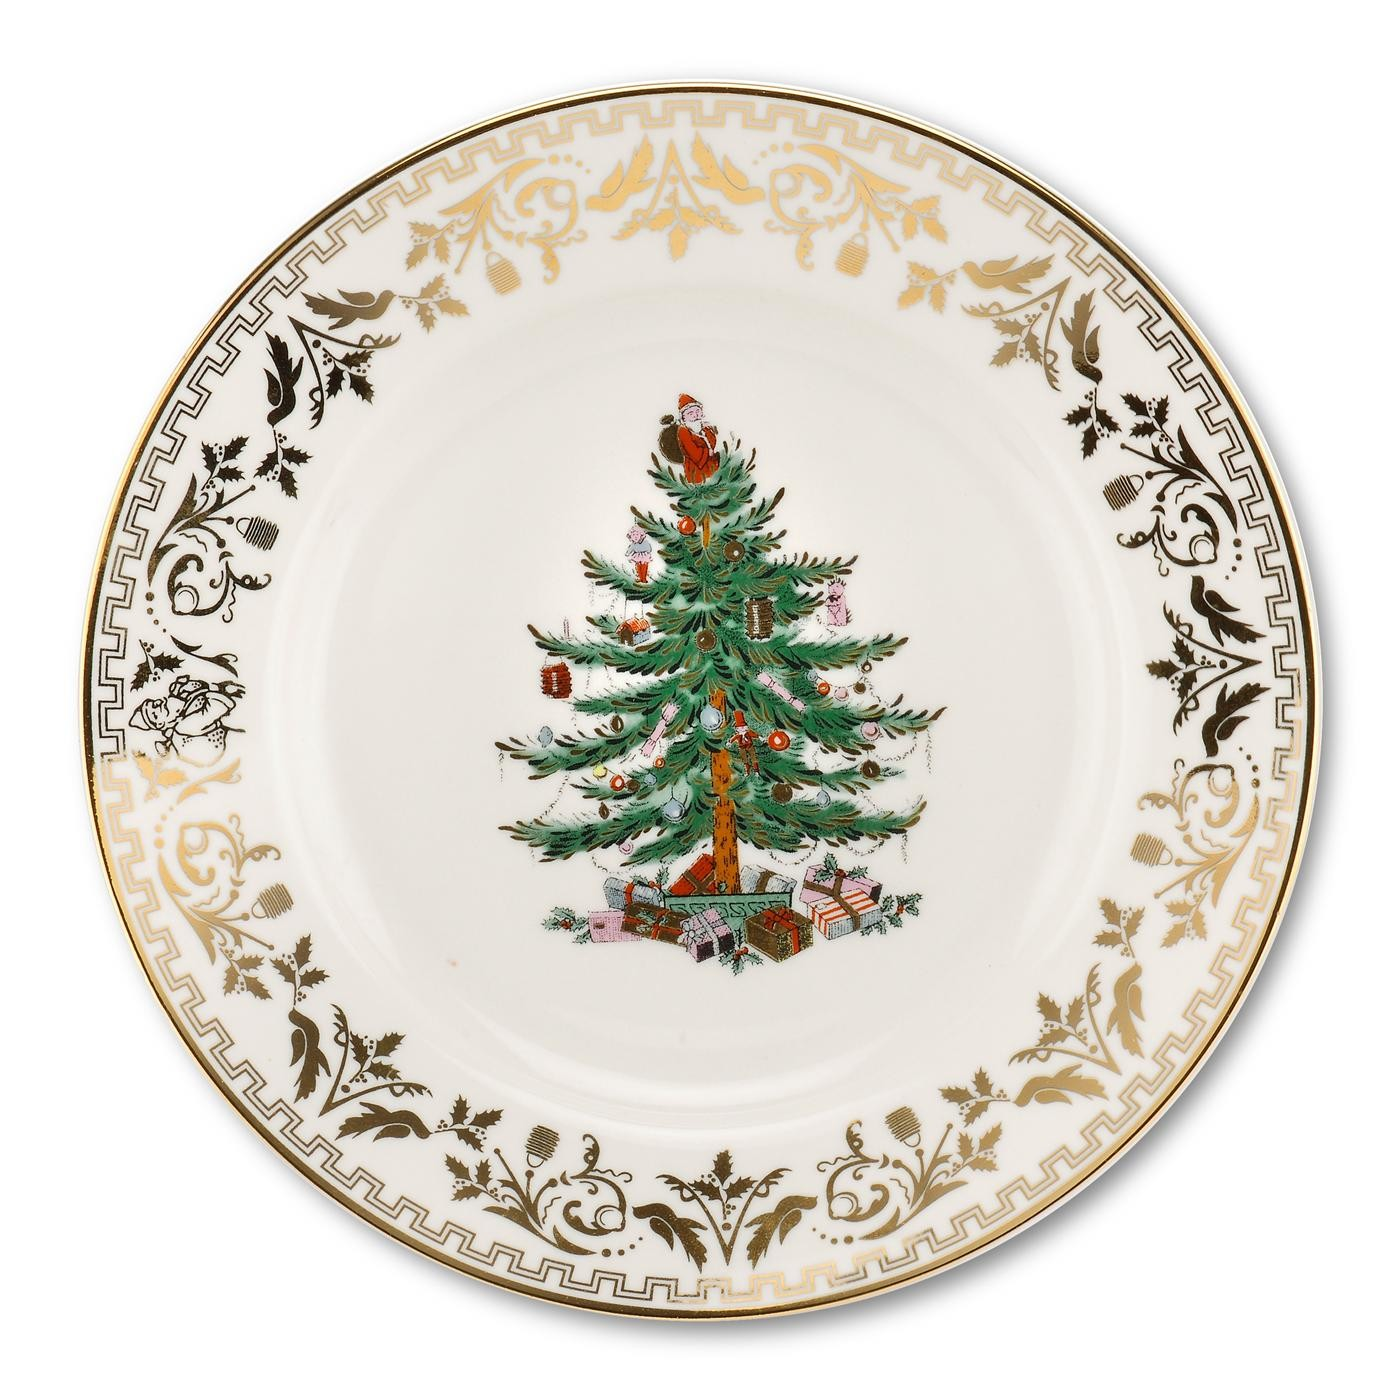 Spode Christmas Tree China Sale: Spode Christmas Tree Gold Salad Plate $20, You Save $20.00